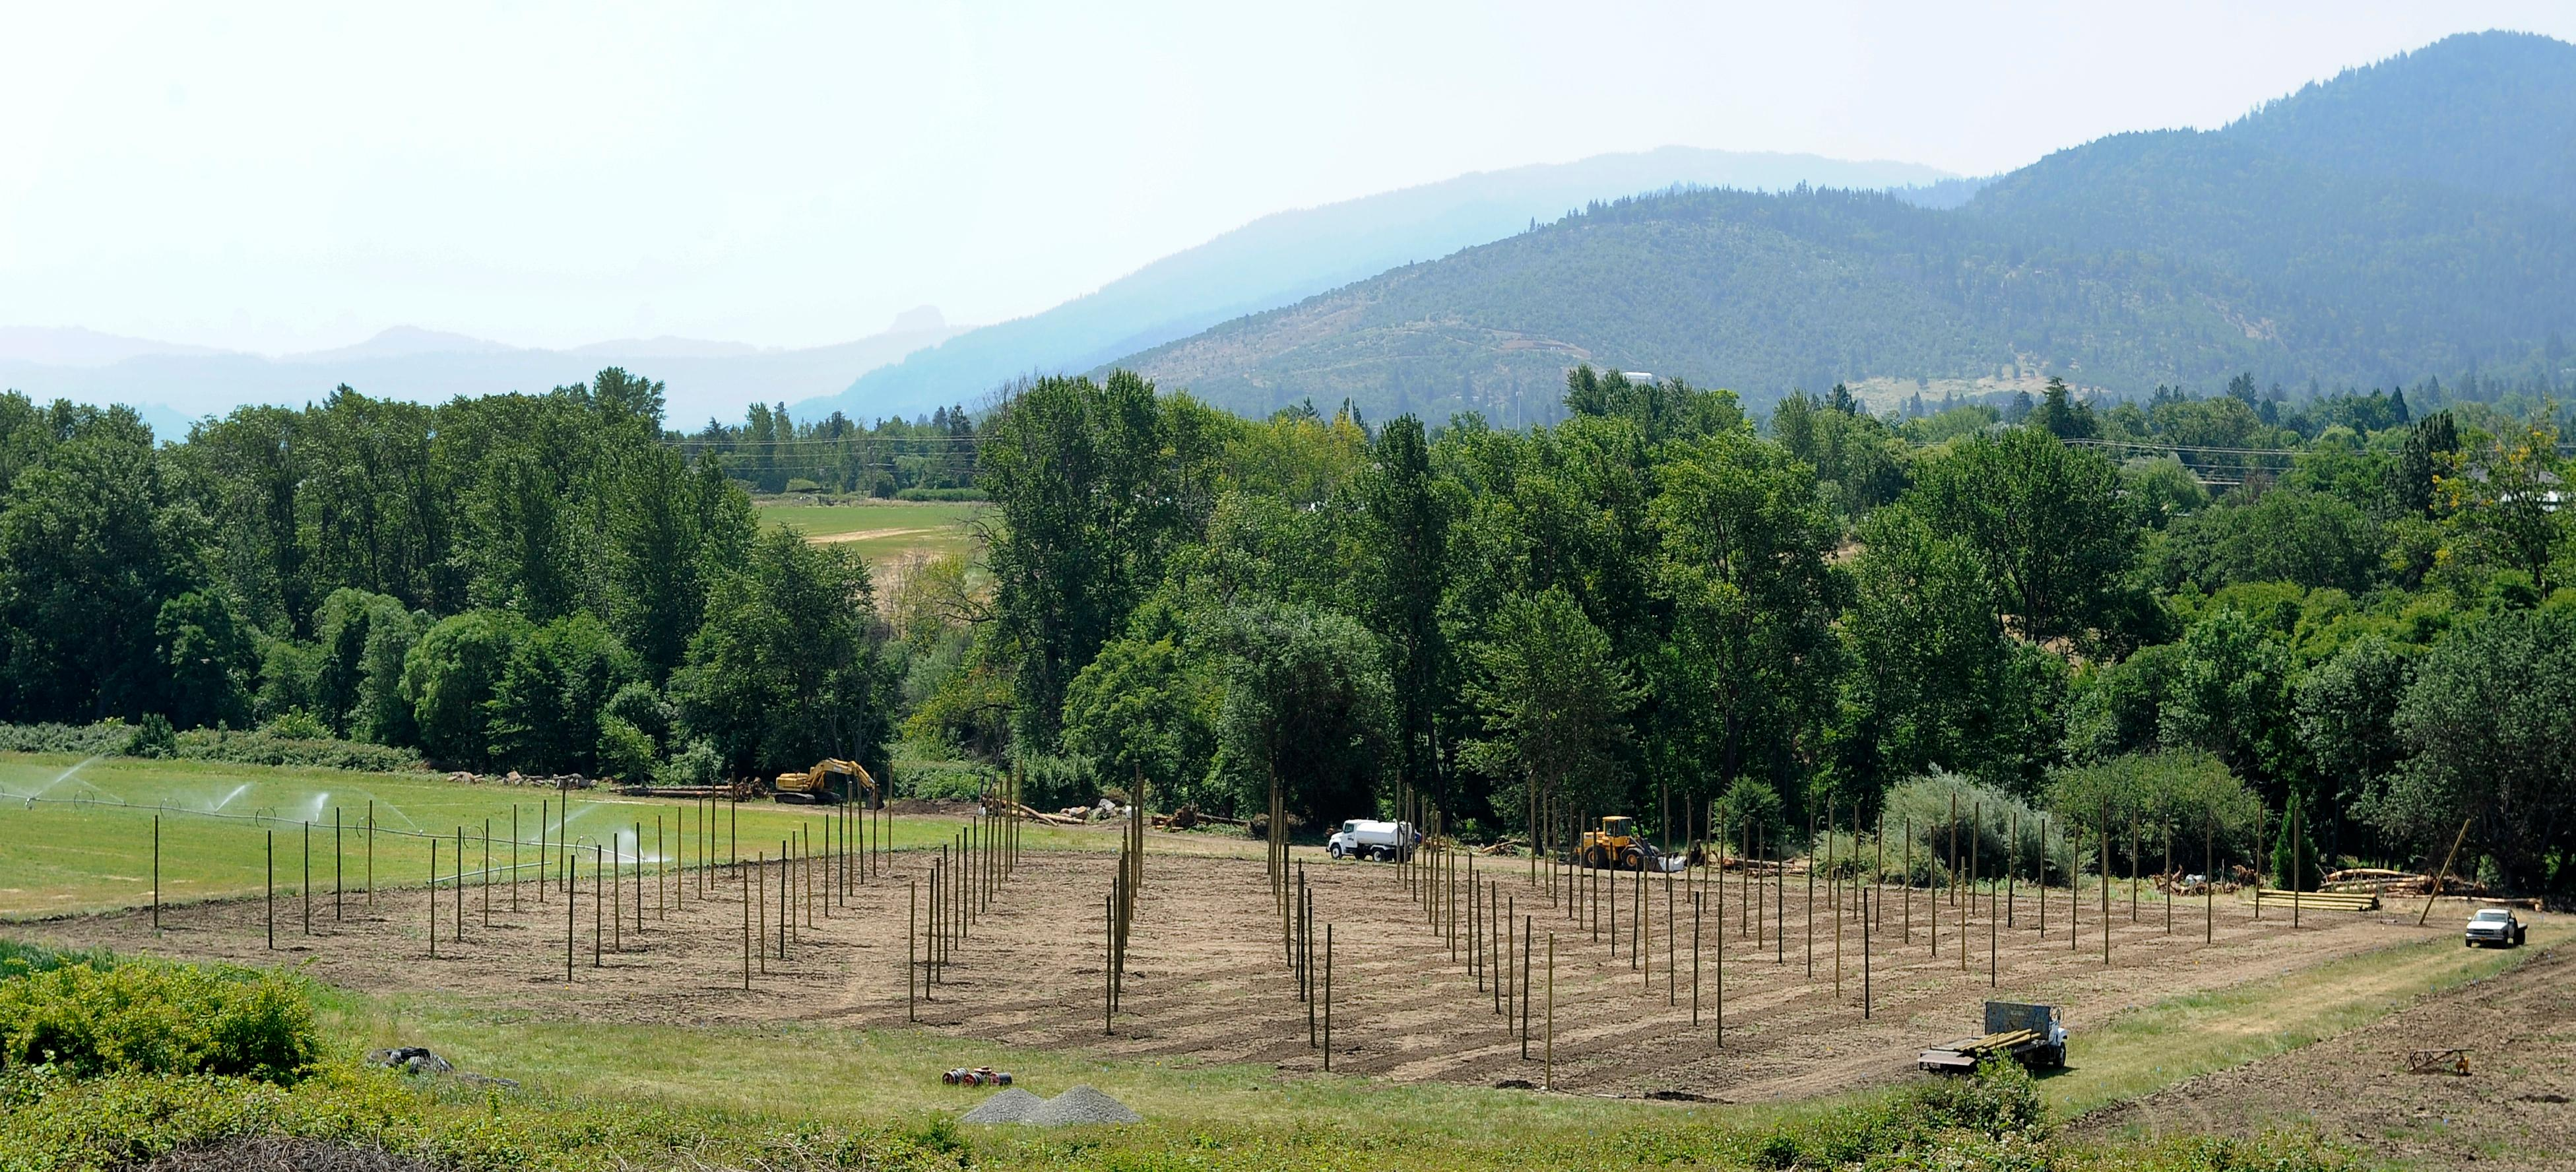 Andy Atkinson / Mail Tribune<br>The view off Interstate 5 of the hop field in Ashland for Base Camp Brewing in Portland.